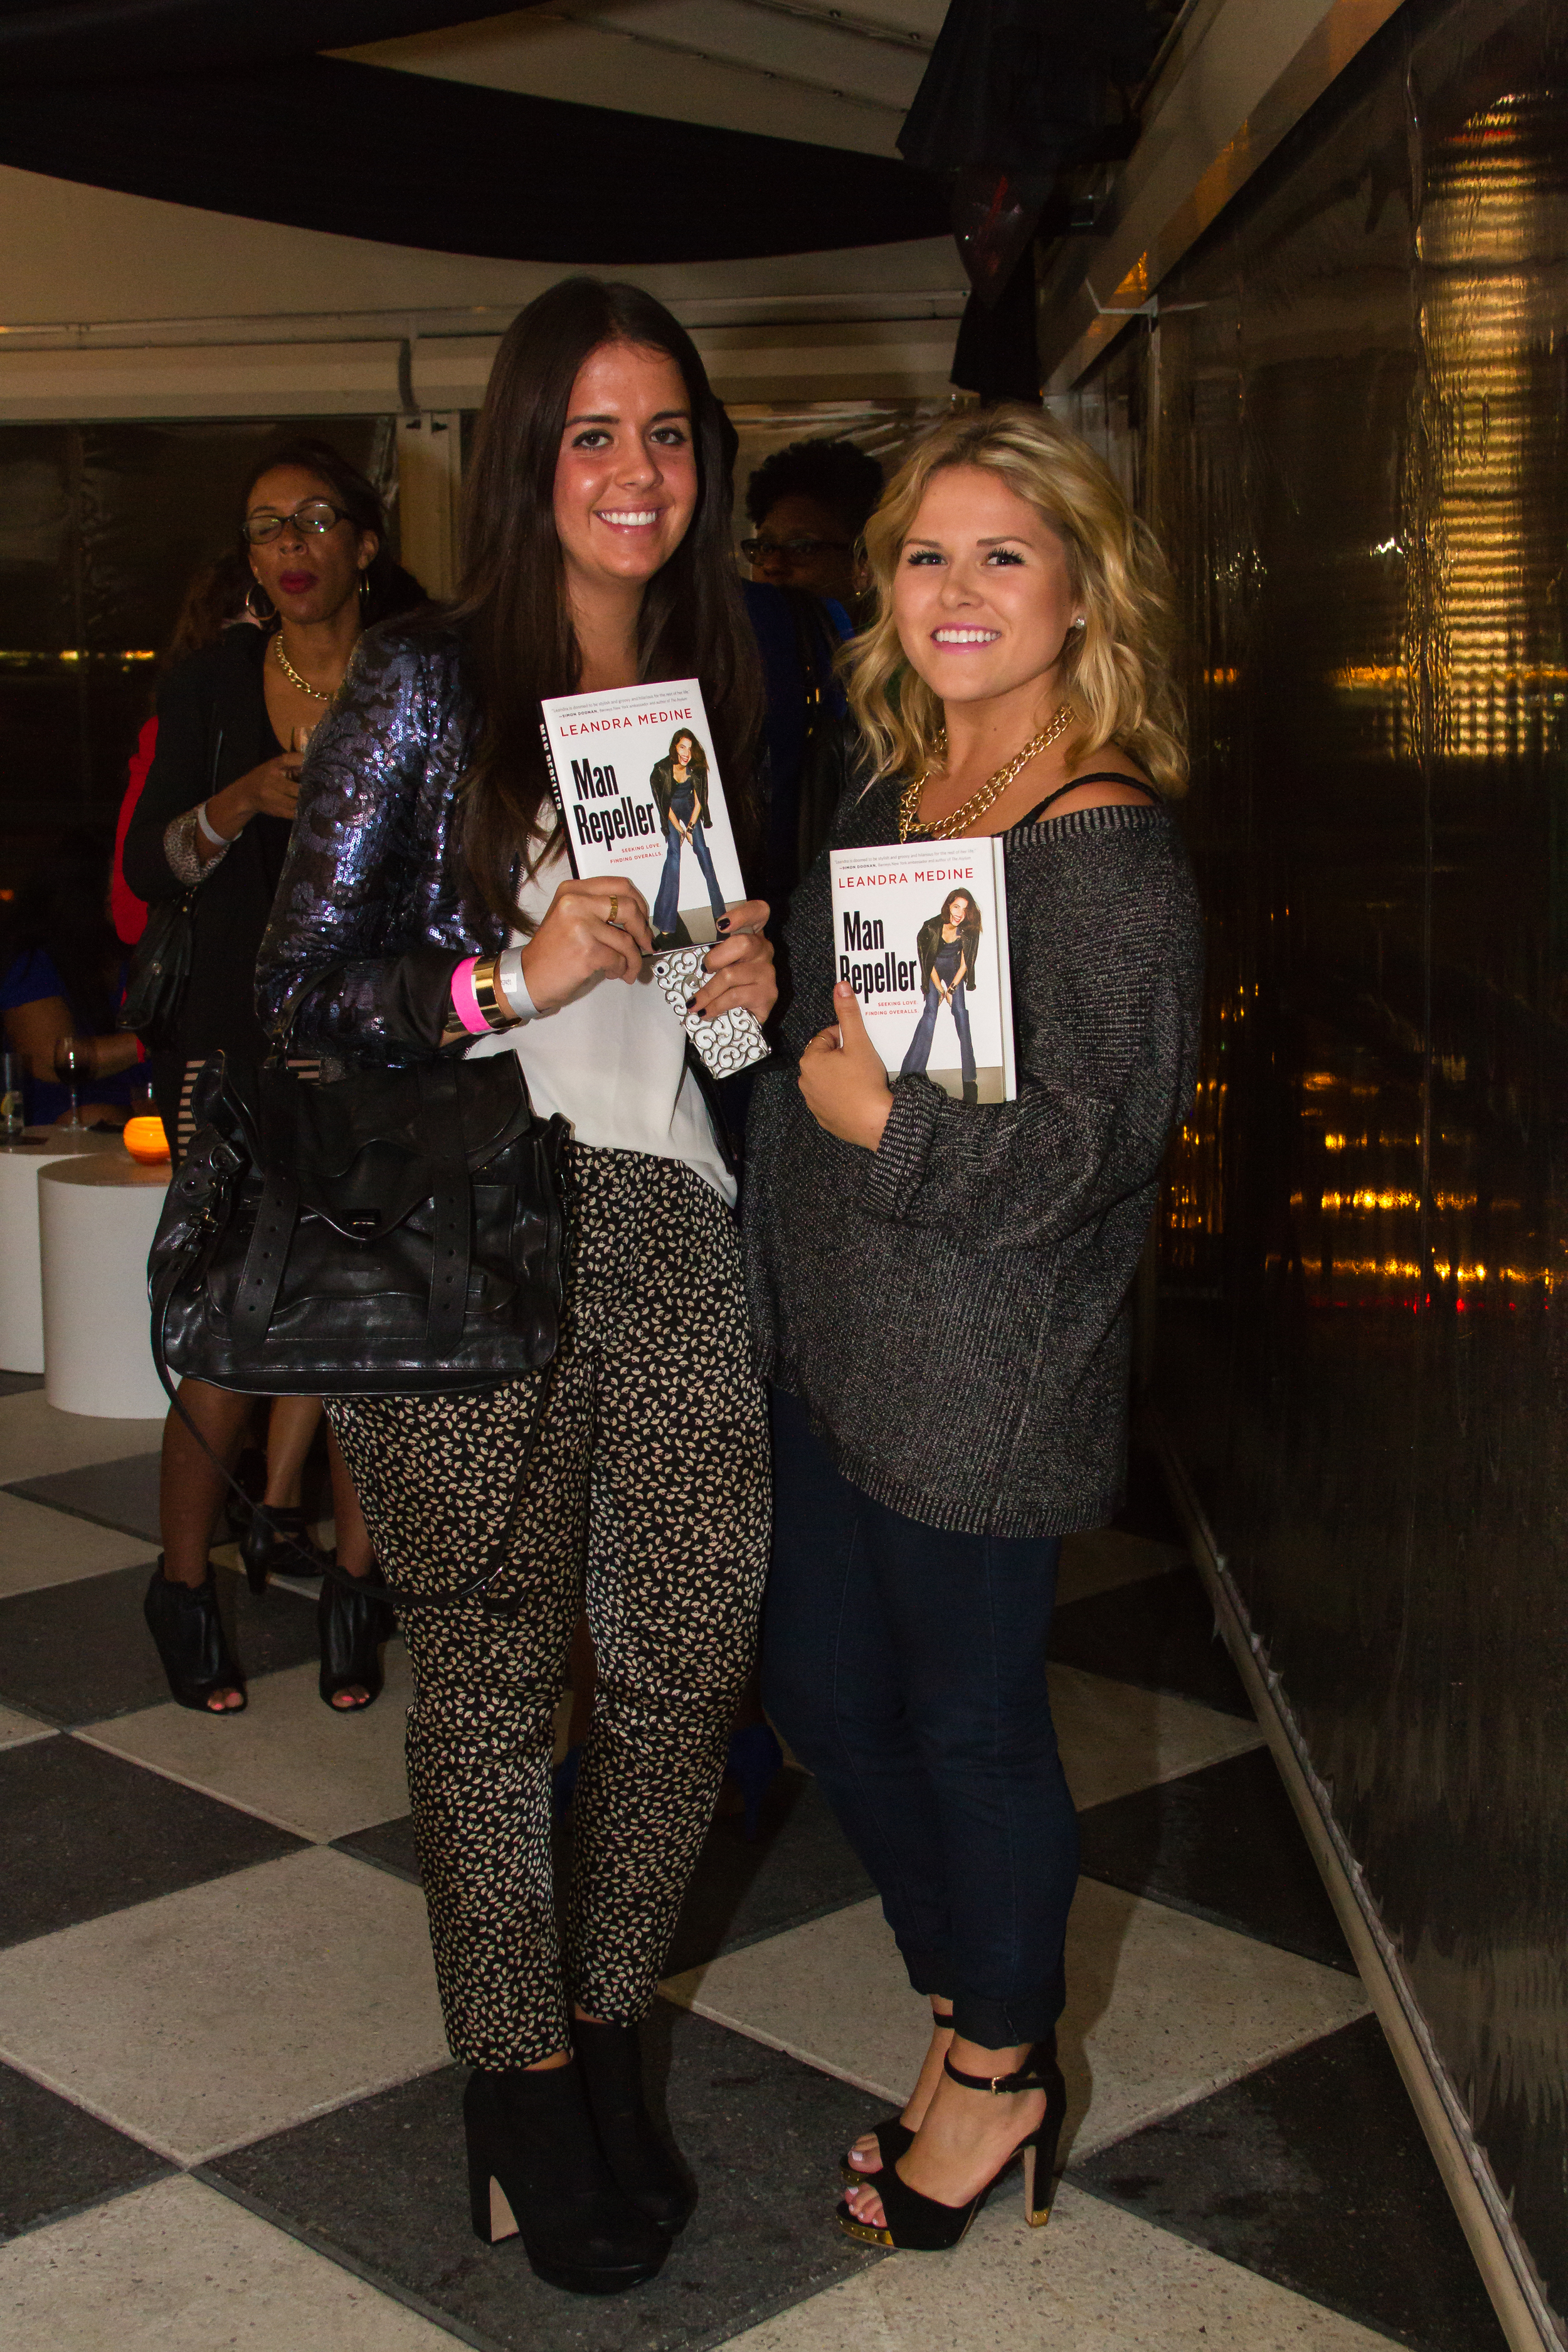 The Man Repeller Book Signing DC-13.jpg